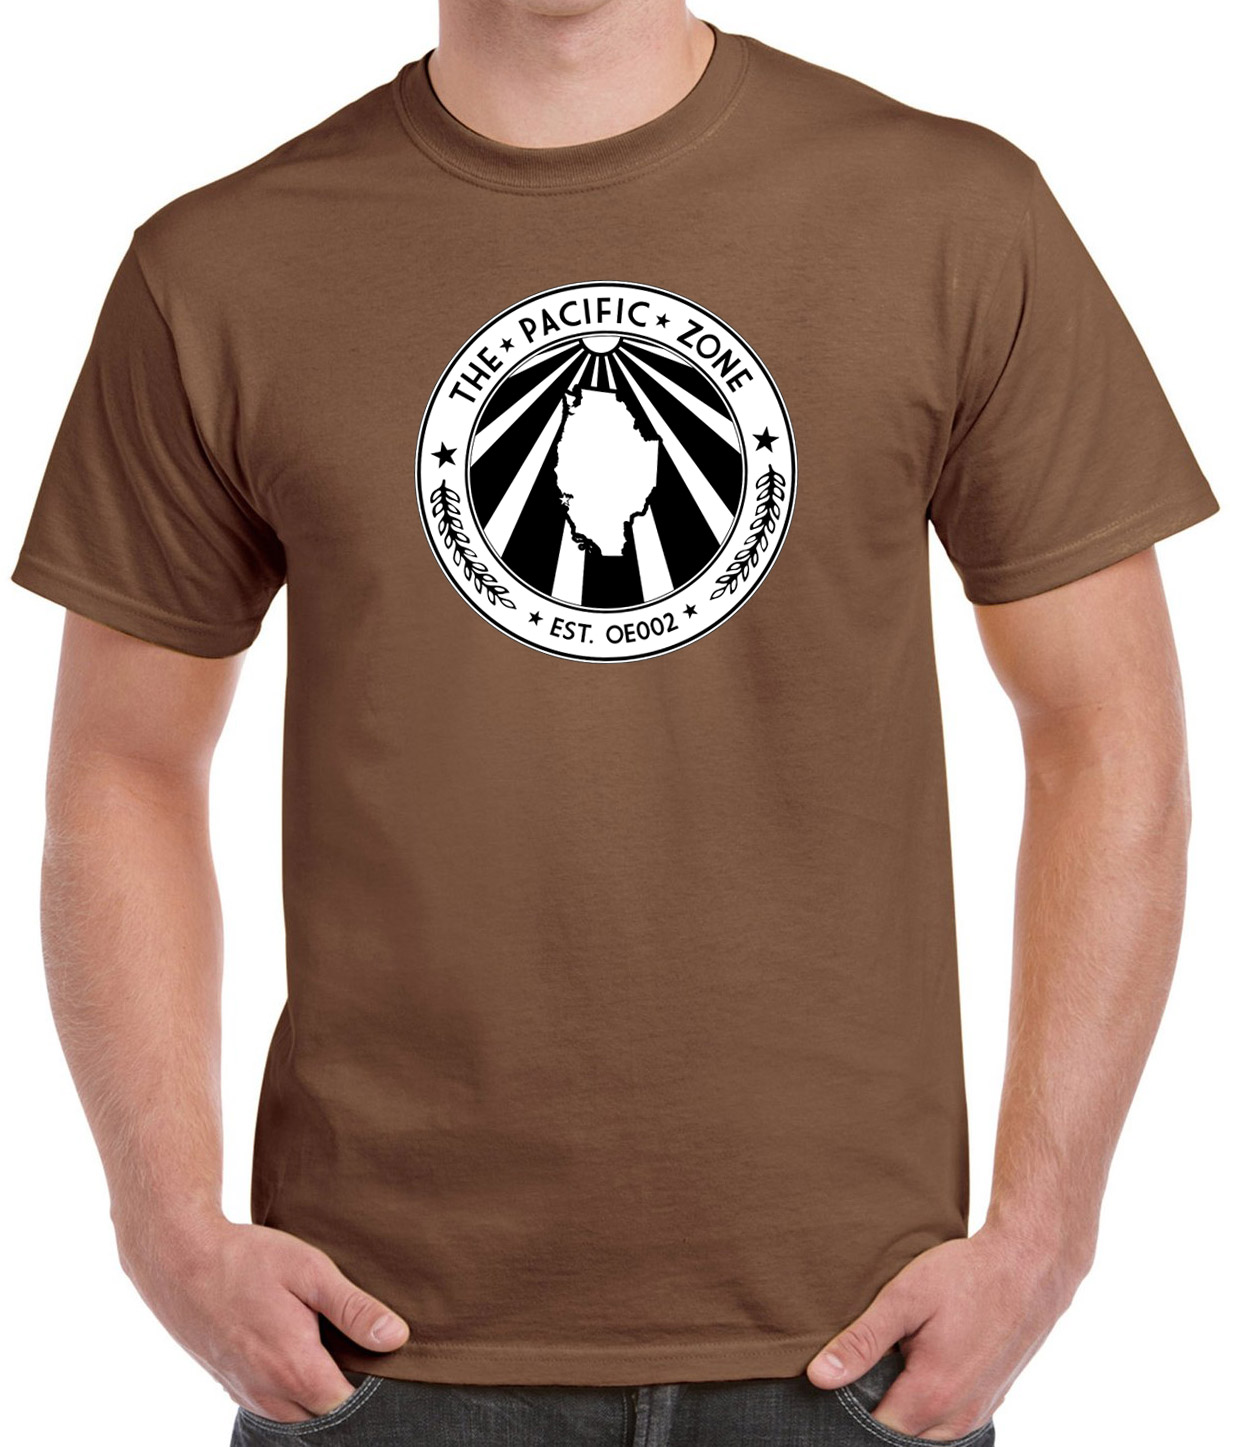 Chestnut brown t-shirt with Pacific Zone crest.